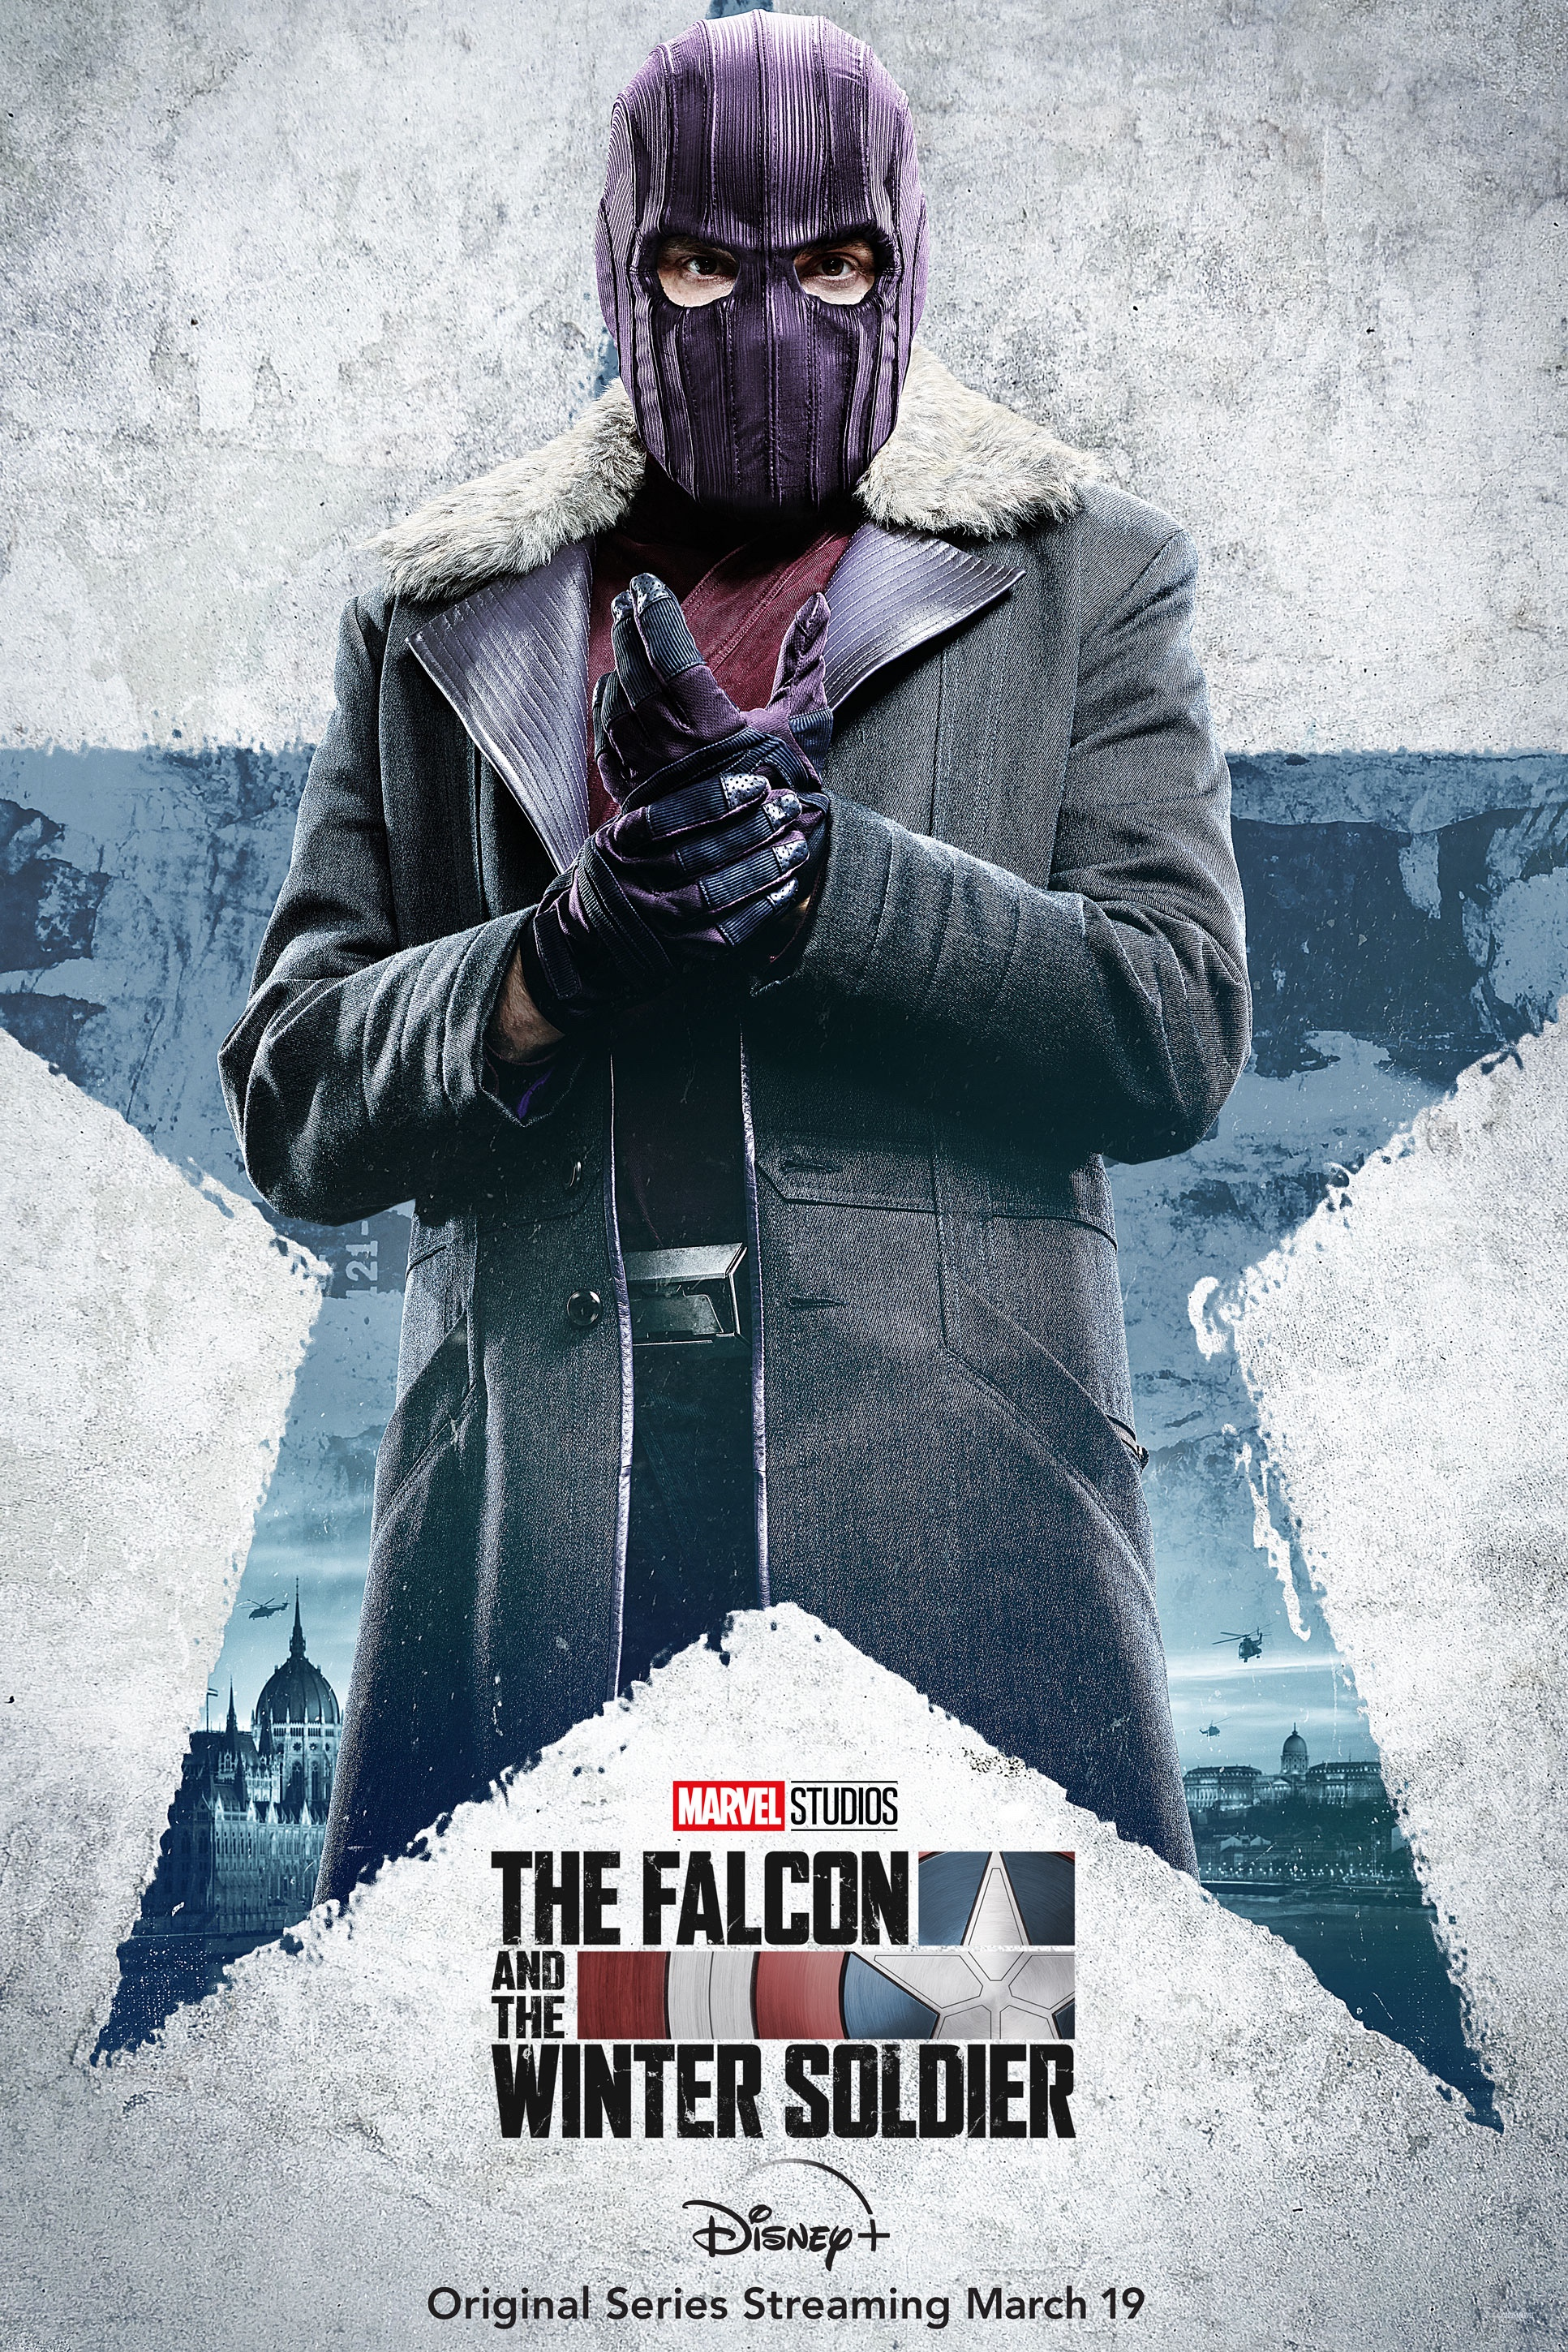 The Falcon And The Winter Soldier Character Poster - Baron Zemo